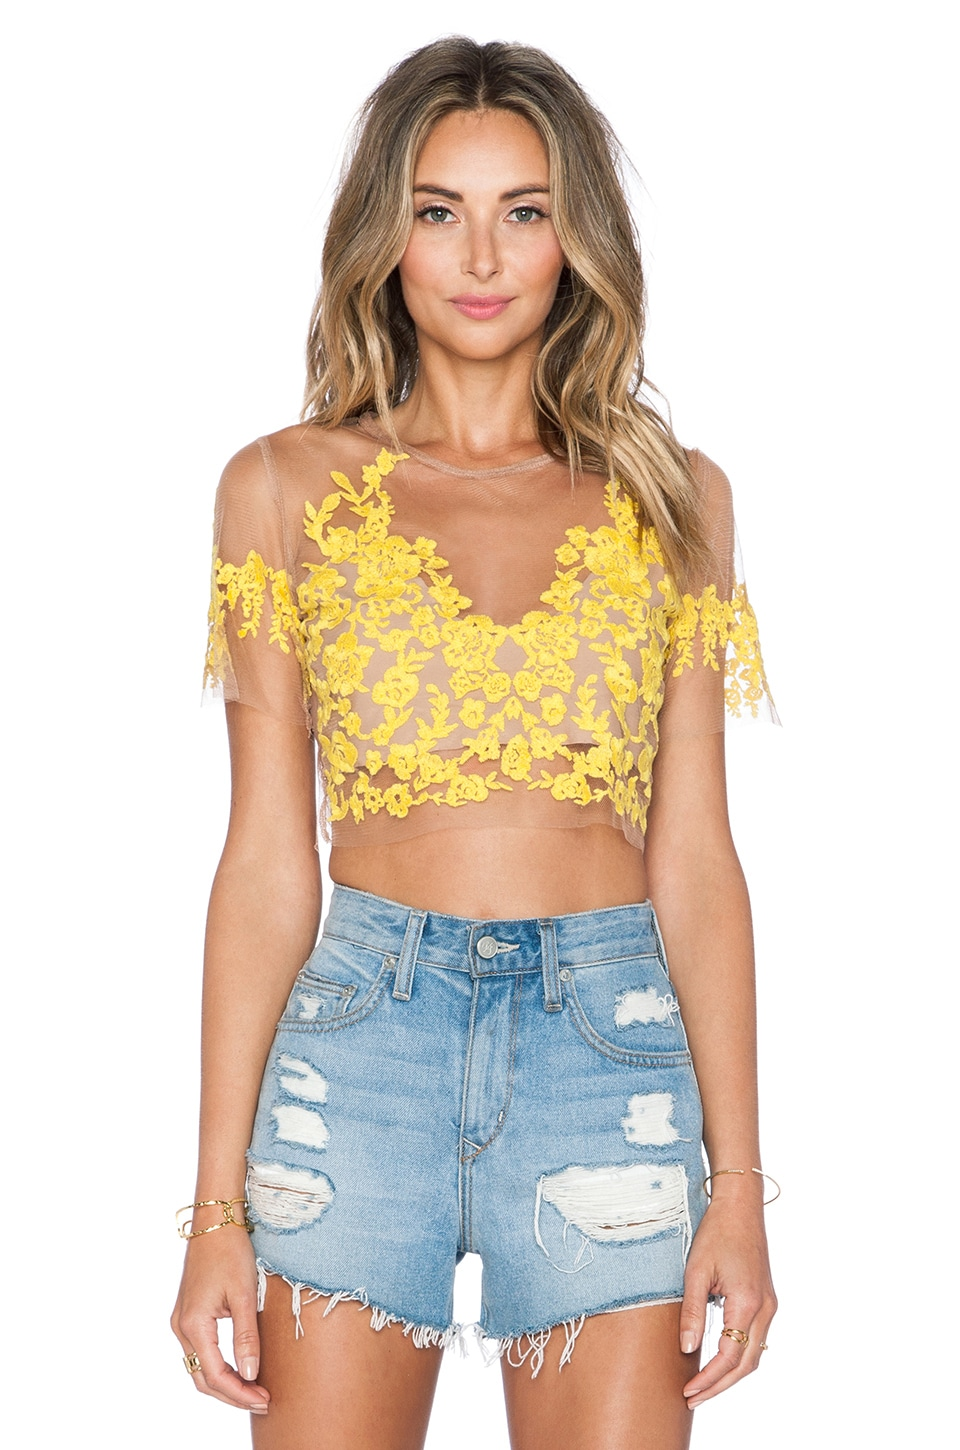 For Love & Lemons Luau Crop Top in Primrose & Nude